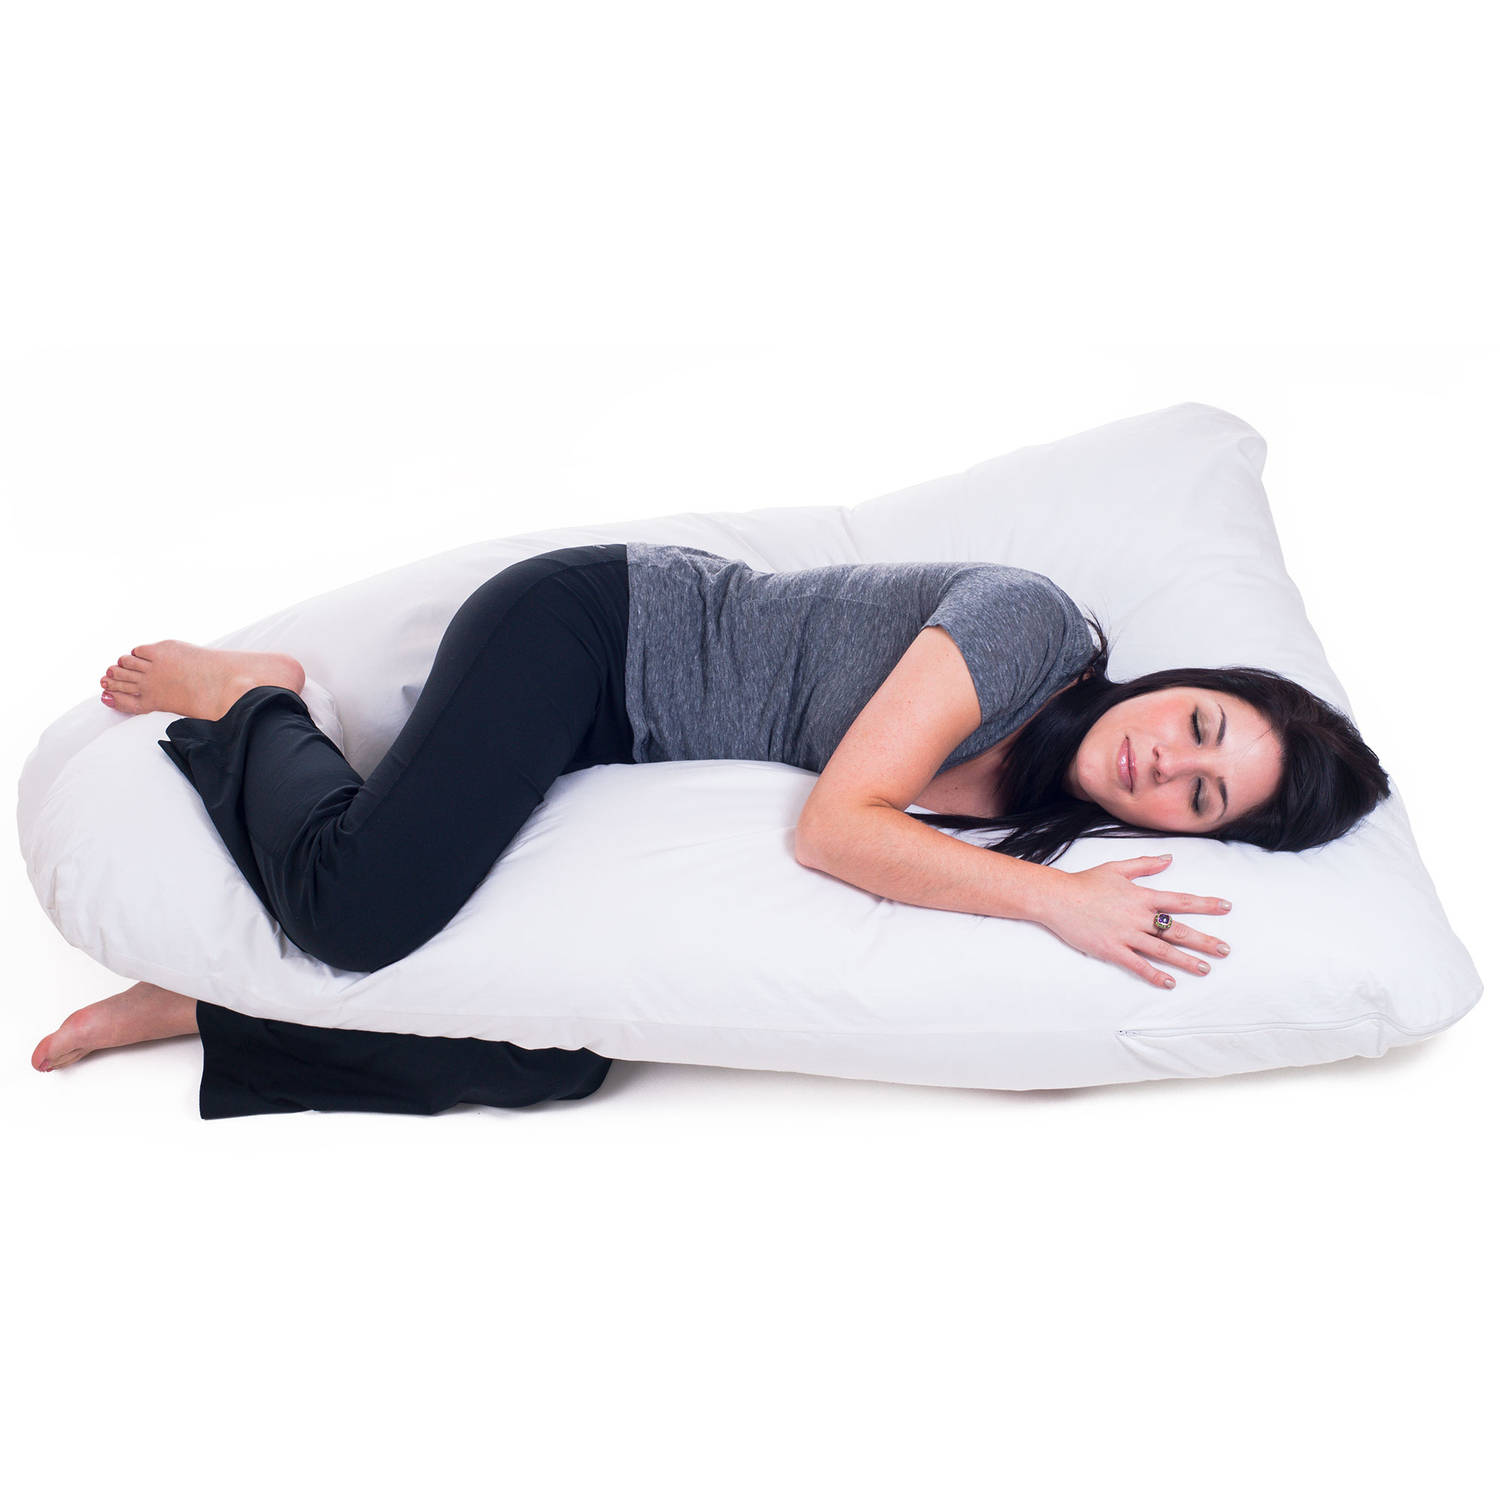 Pregnancy Pillow, Full Body Maternity Pillow with Contoured U-Shape by Bluestone, Back... by Trademark Global